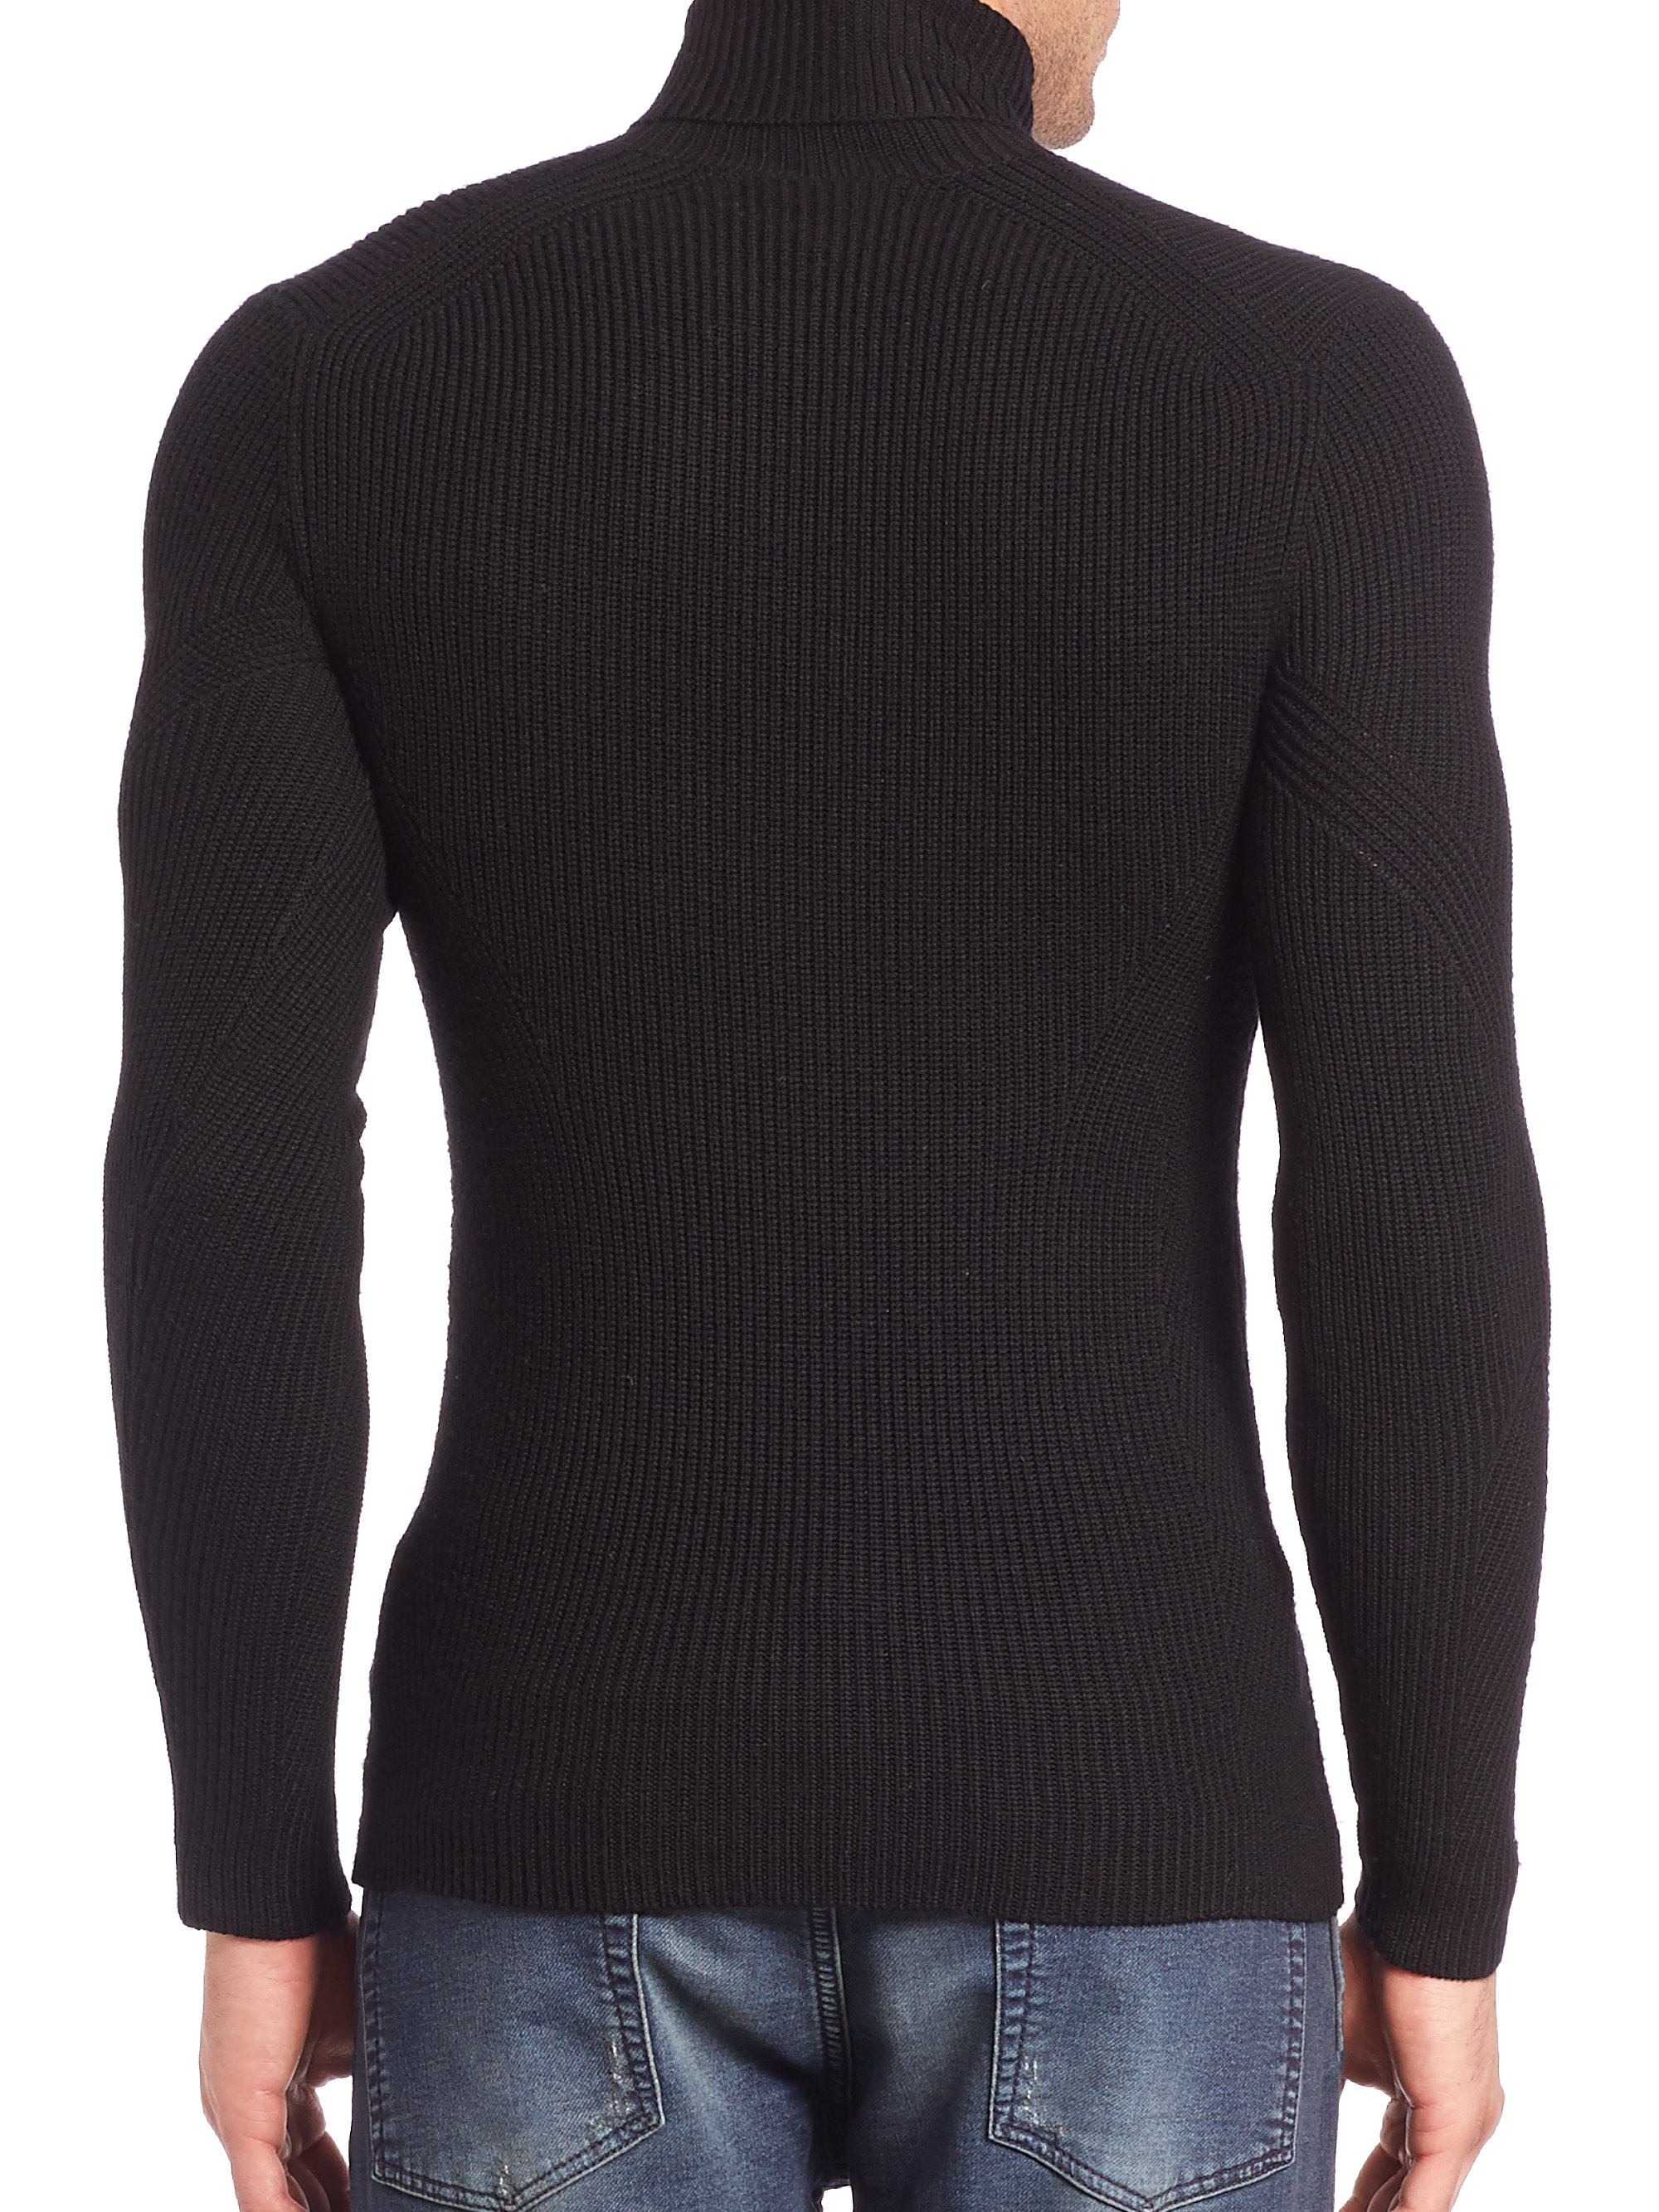 Ralph Lauren Cropped Sweater